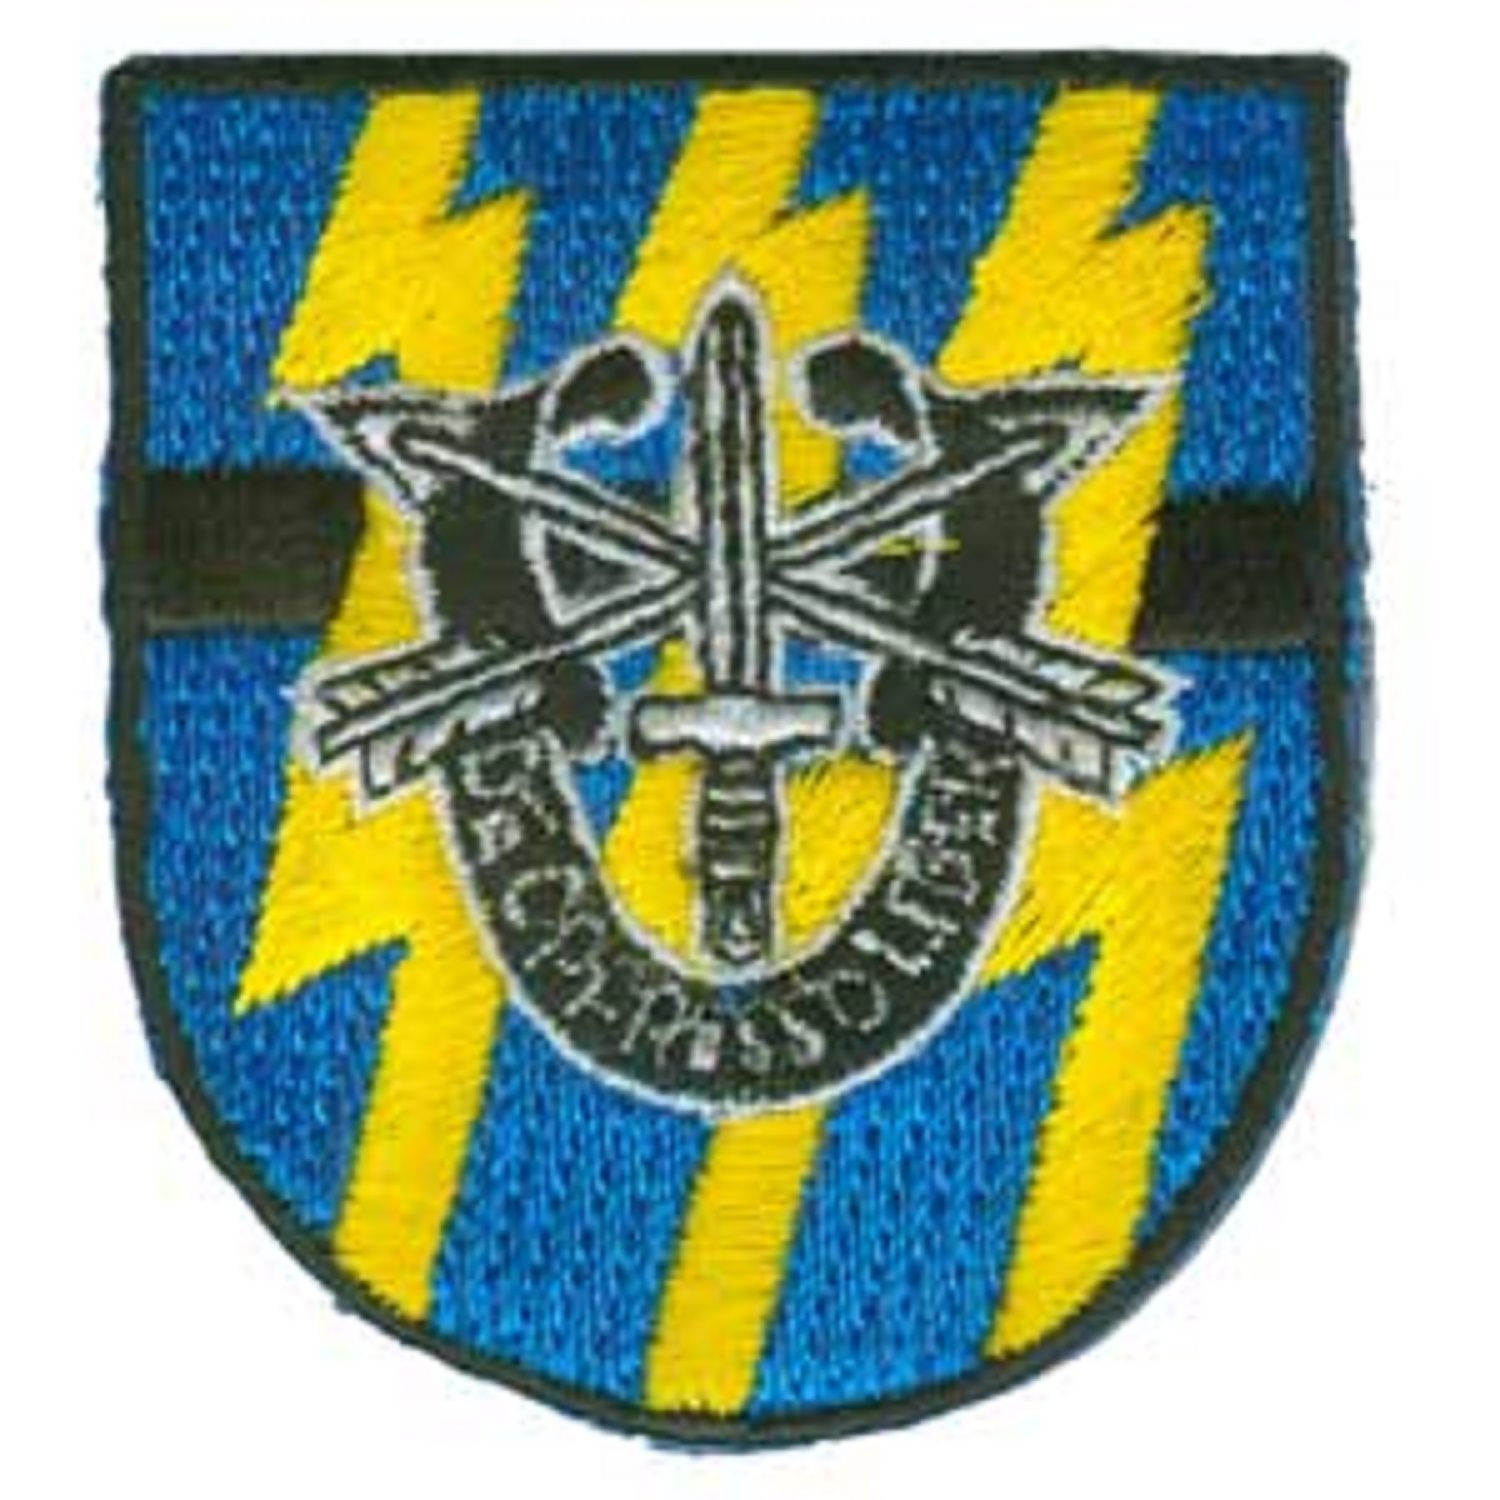 12th Special Forces Group Flash (1972-present)